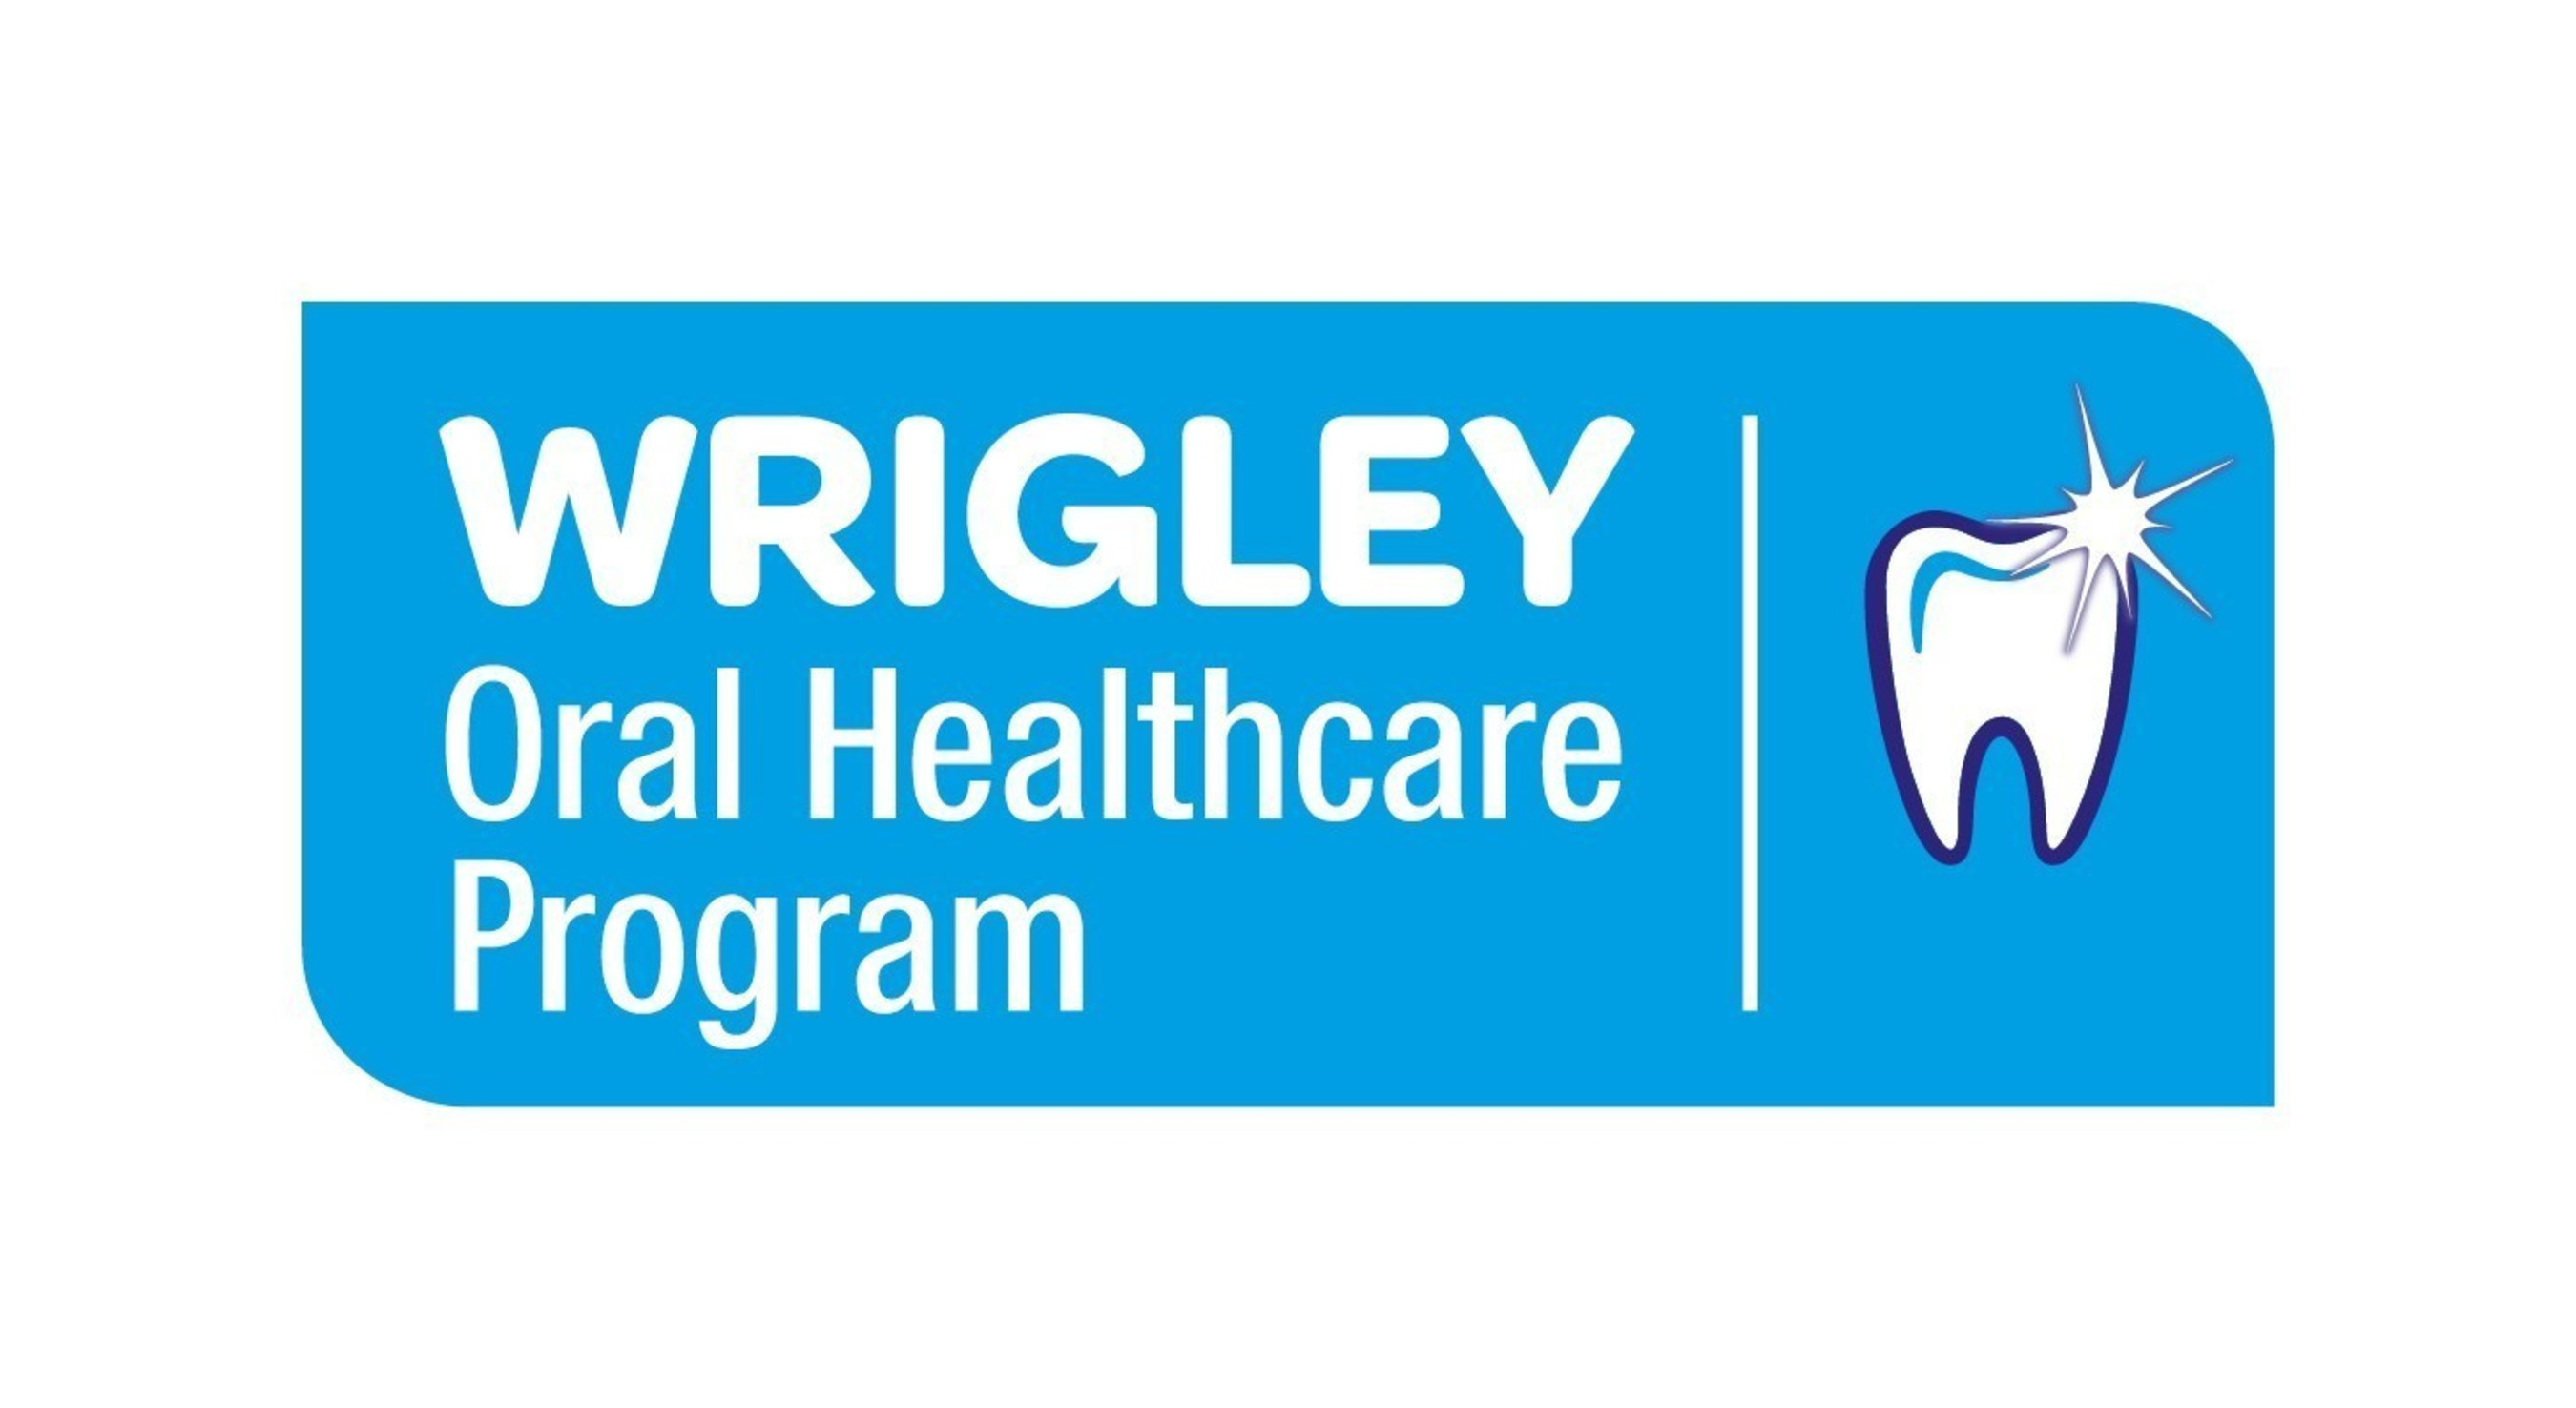 Young dental launches wrigleys orbit flavored prophy paste and gum wrigleys orbitr flavored prophy paste and gum packs thecheapjerseys Images